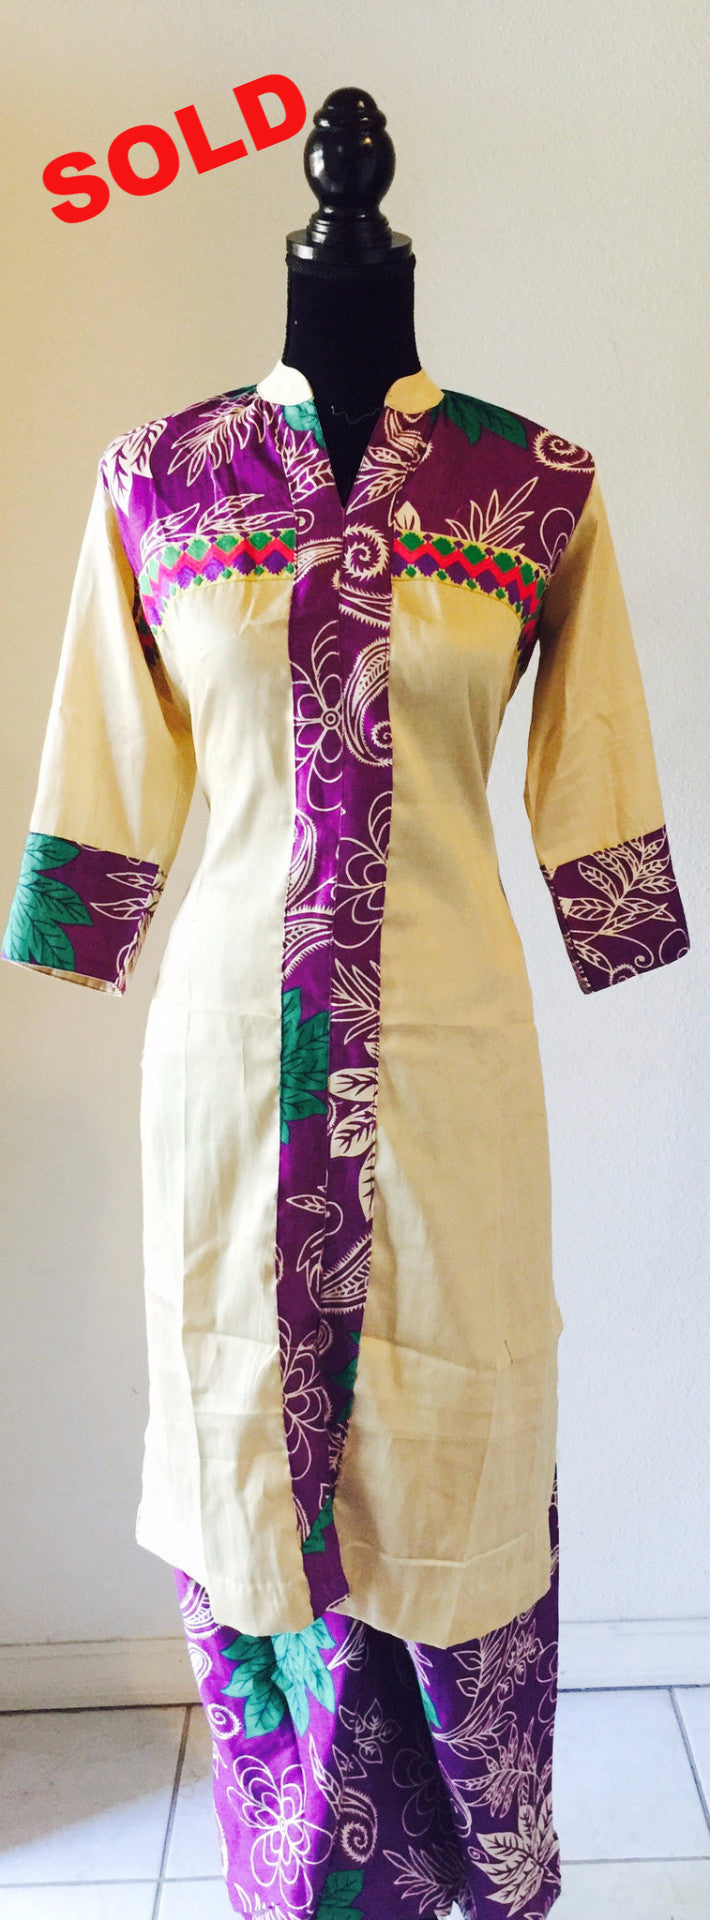 palazzo dress in printed cream and purple #FDSKHPR022